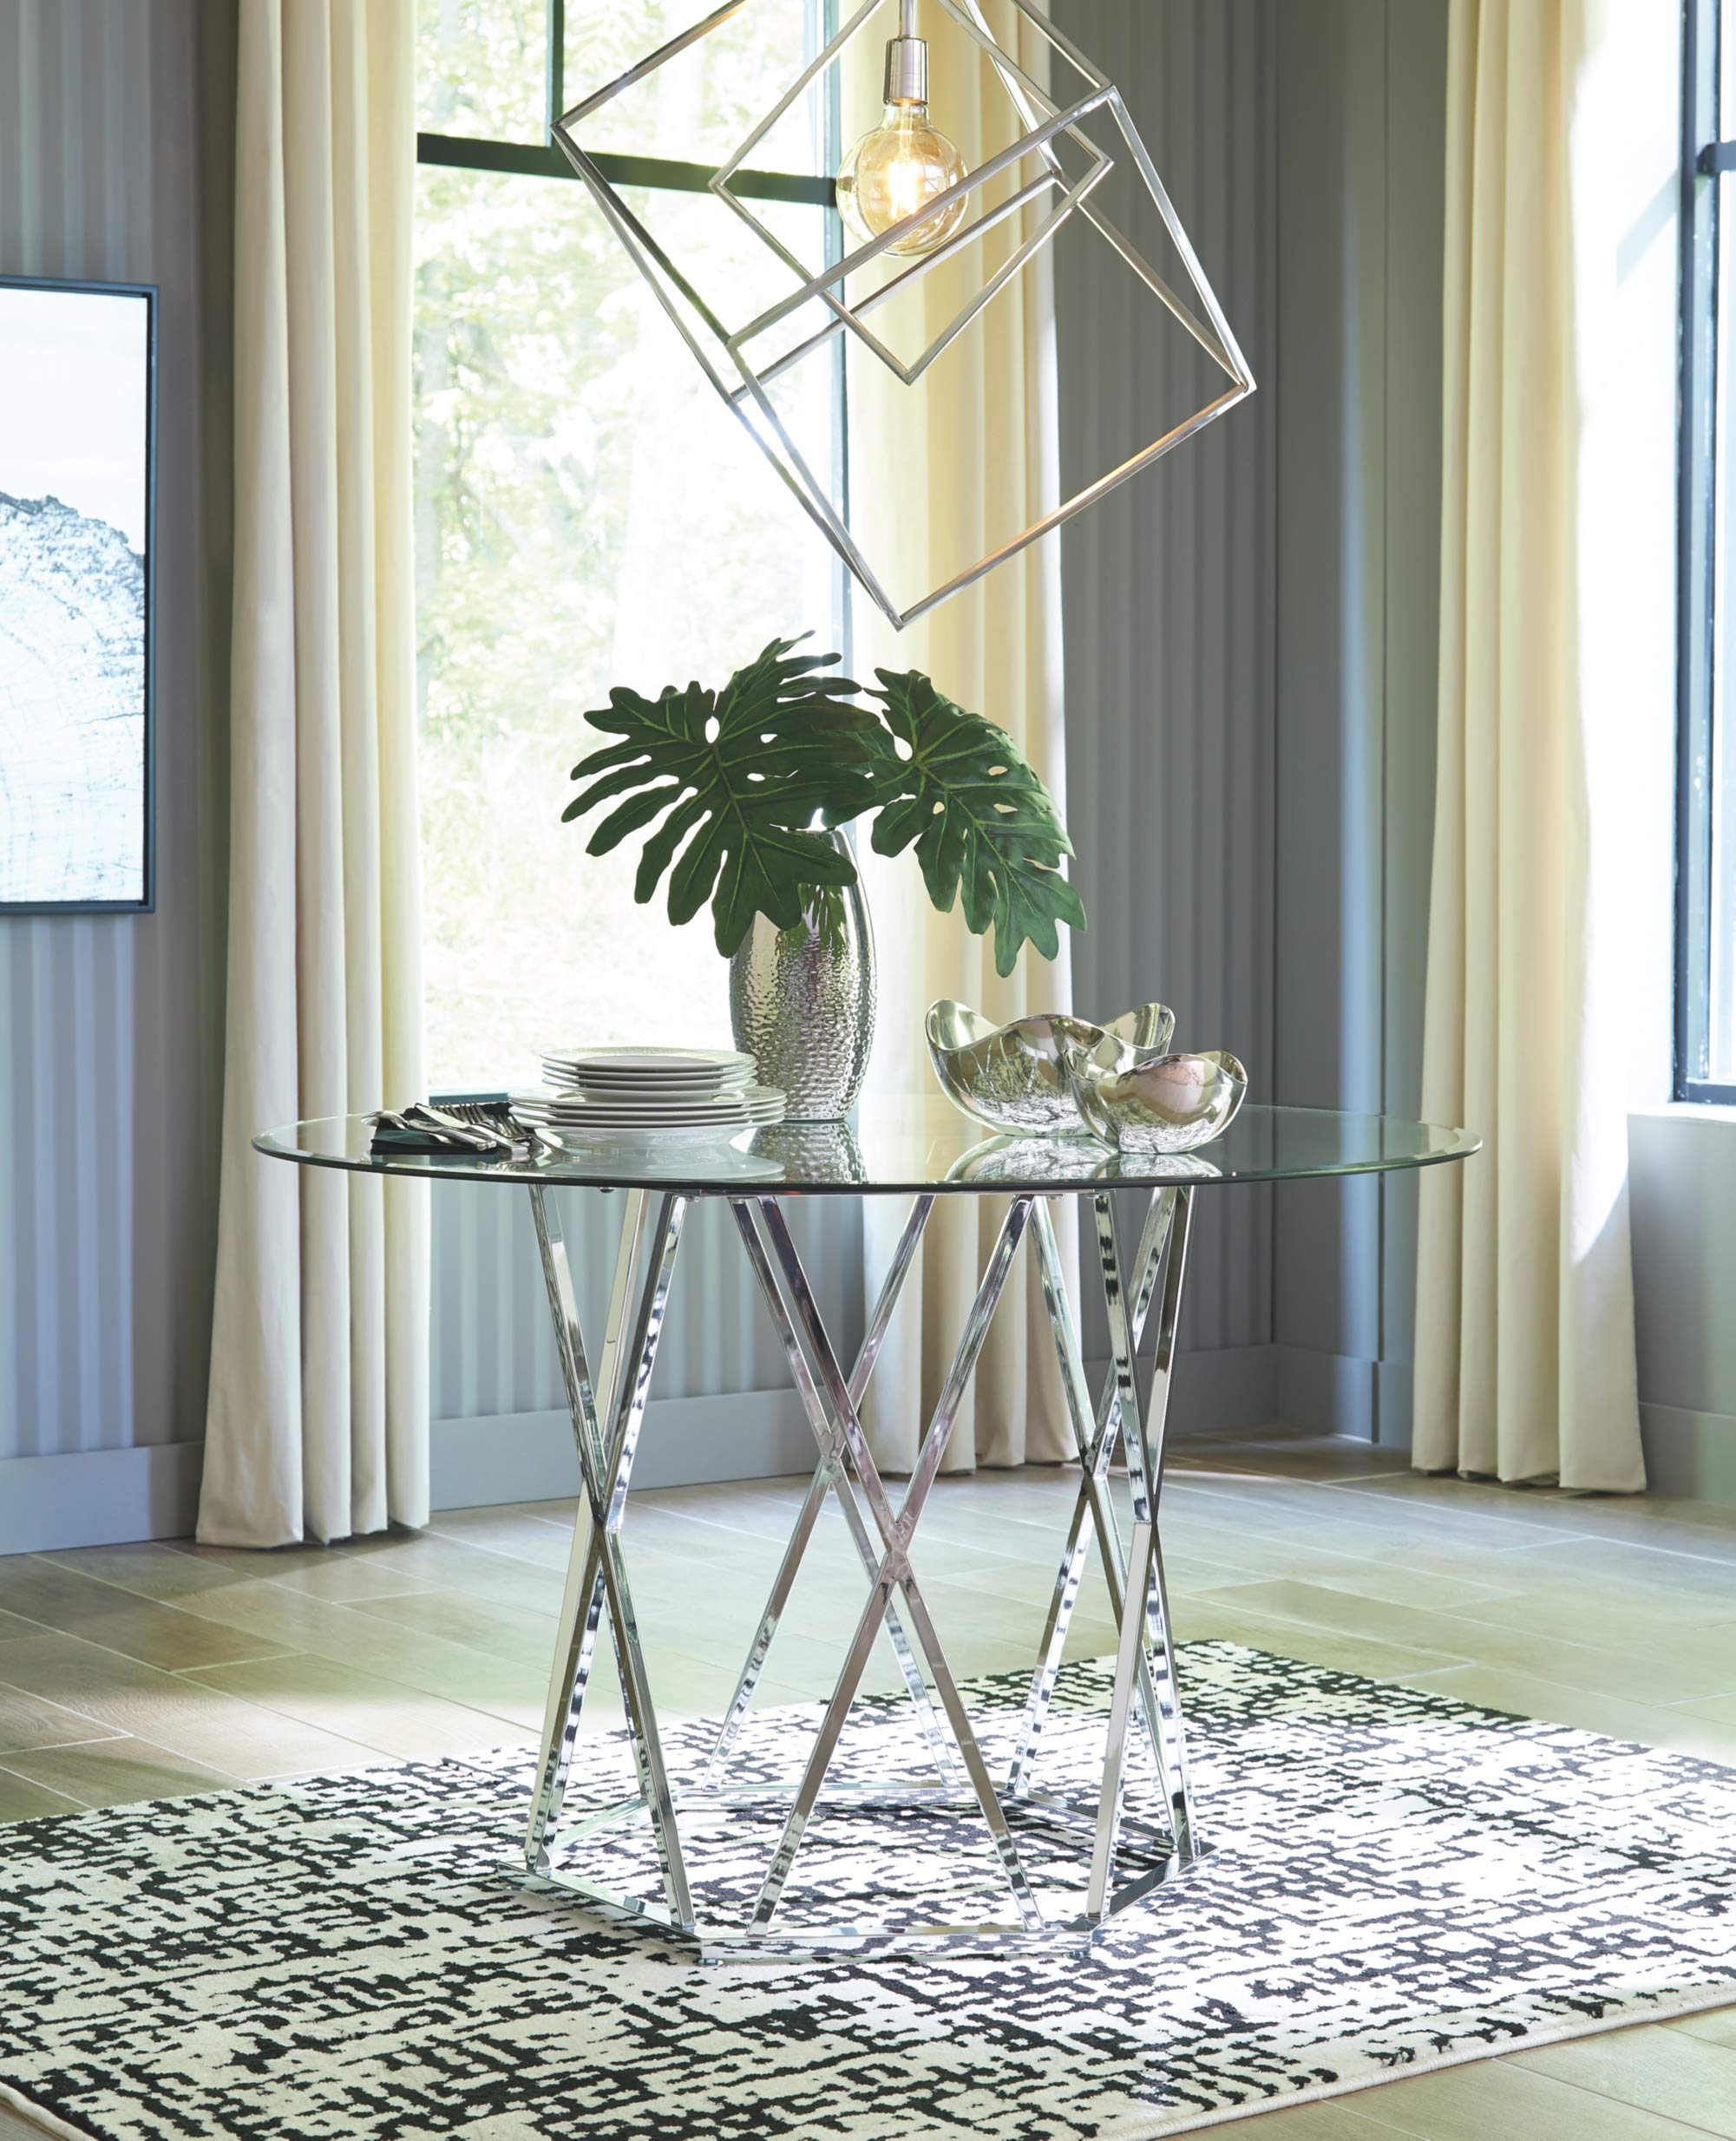 Signature Design by Ashley D275-15 Madanere Dining Table, Chrome by Signature Design by Ashley (Image #2)